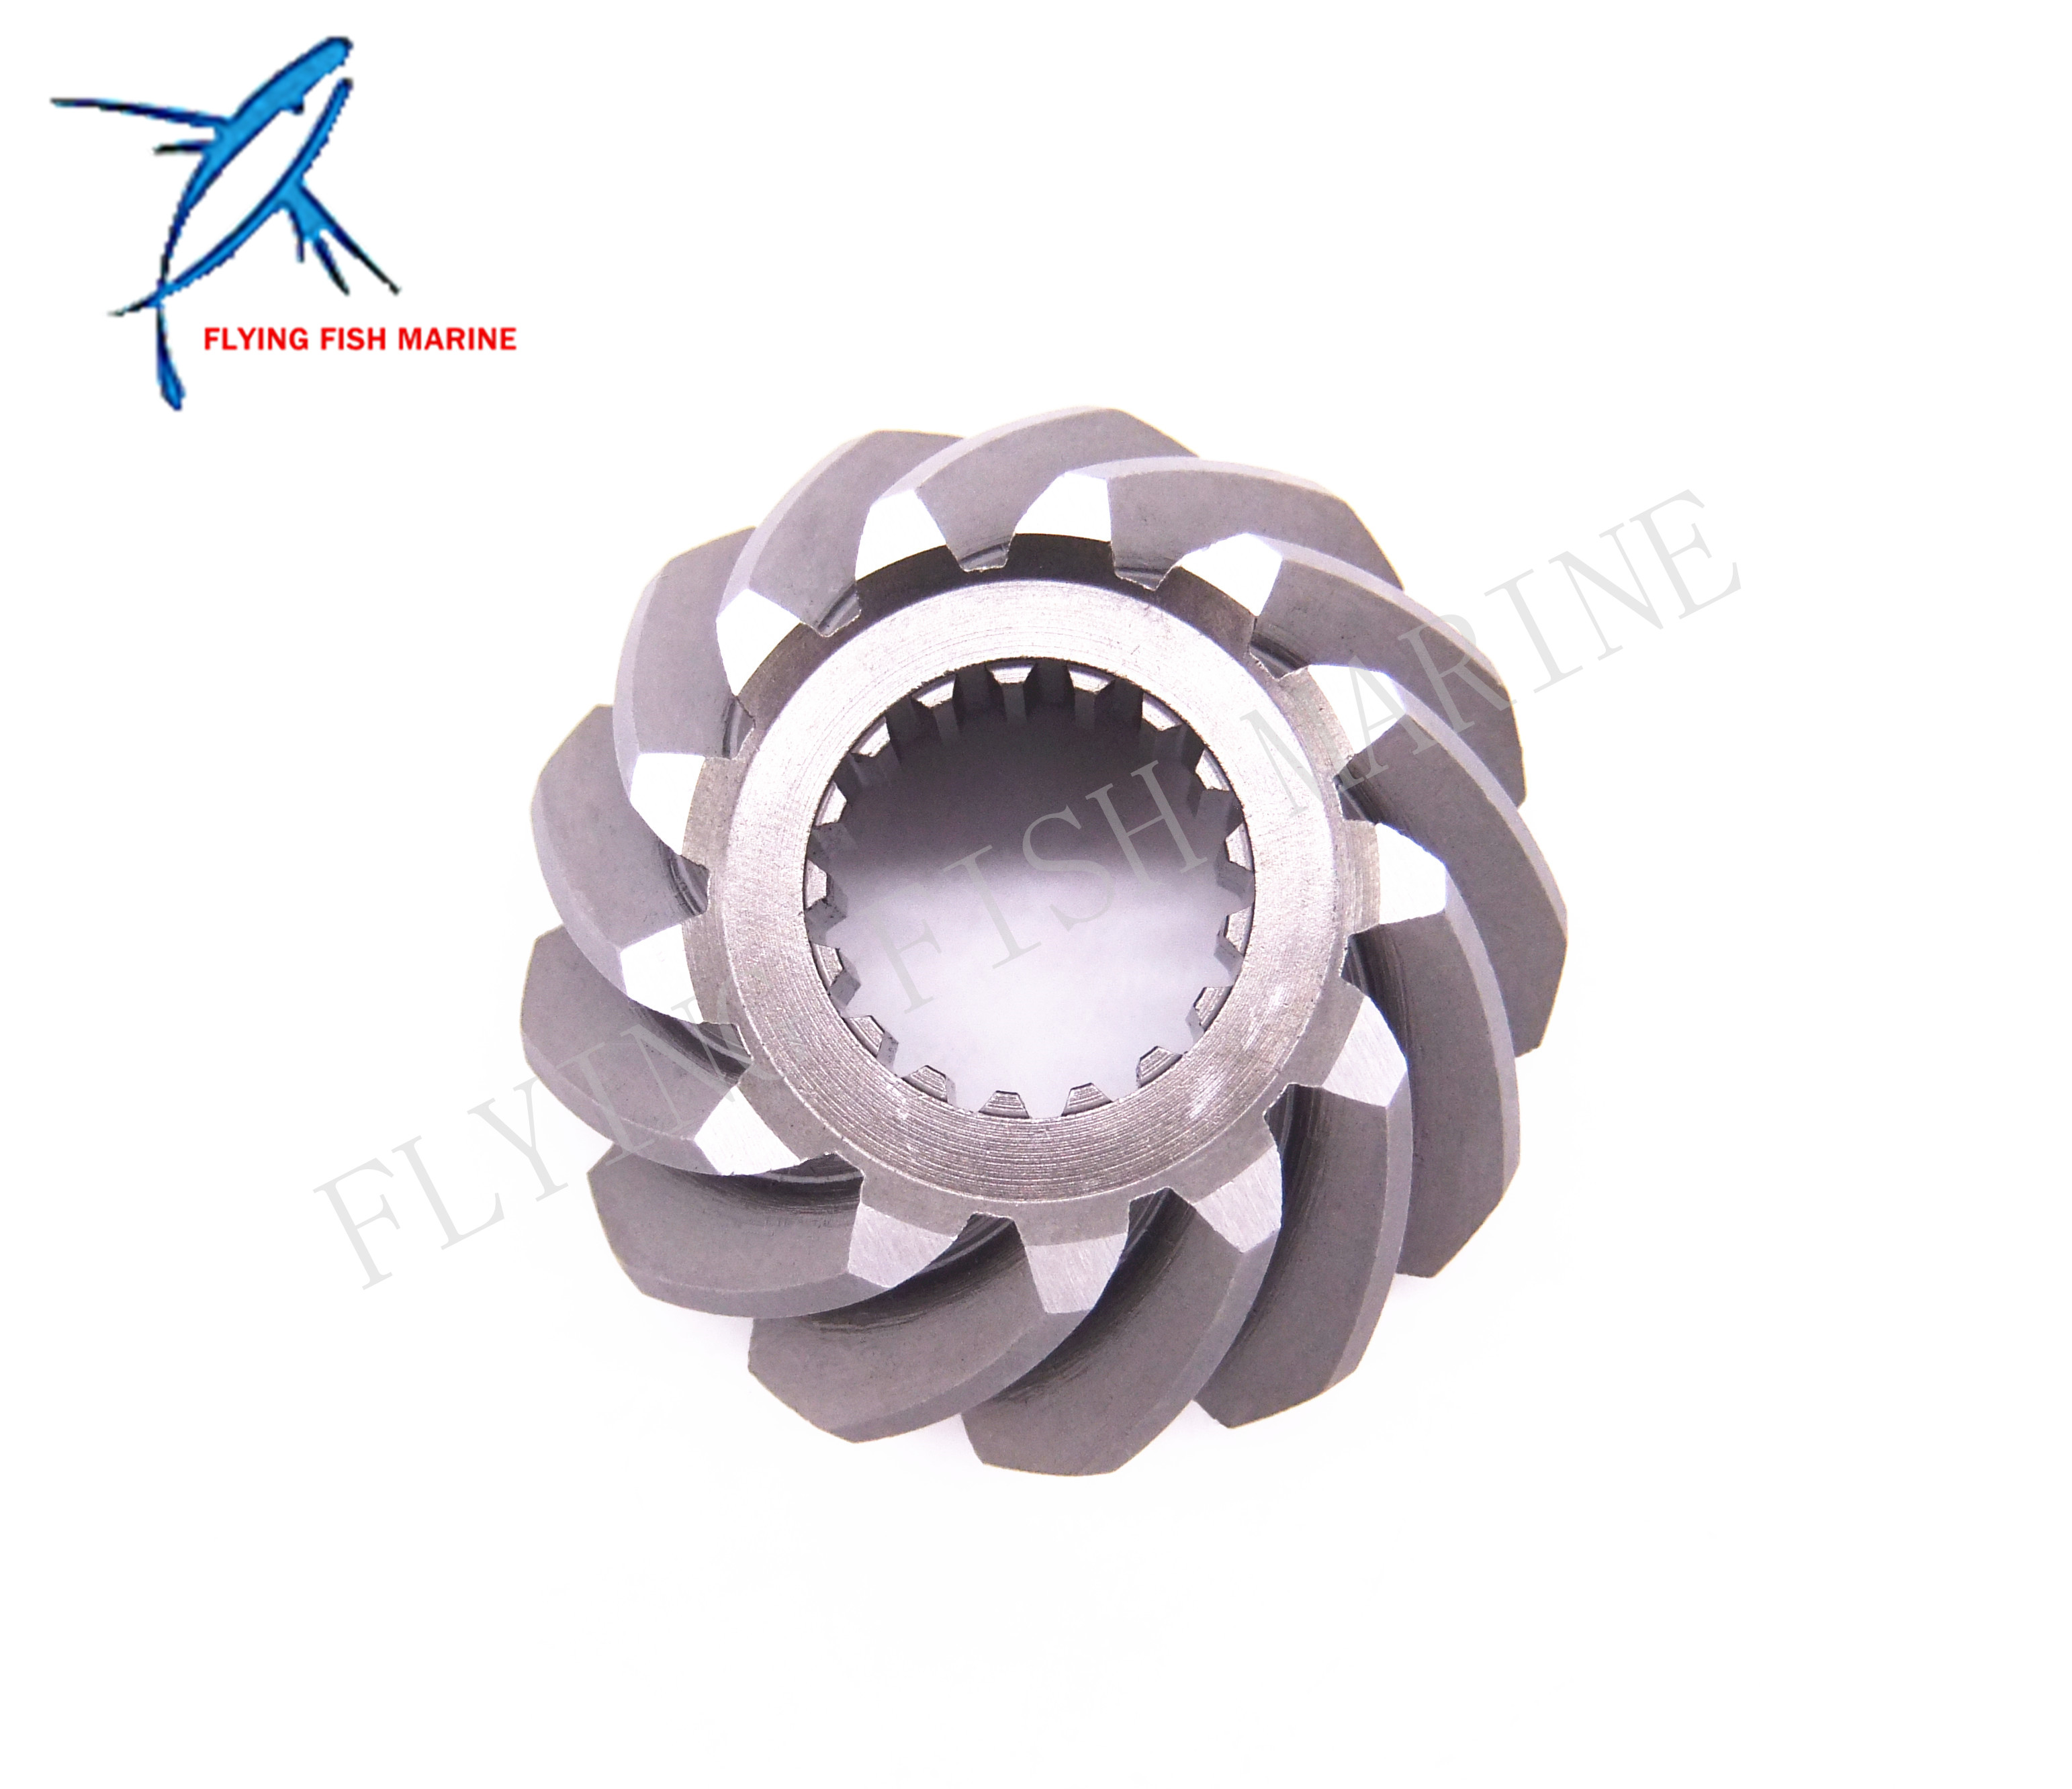 Boat Motor T85-04000605 Pinion Gear For Parsun Hdx Outboard Engine 2-stroke T75 T85 T90 Free Shipping Fine Quality Boat Parts & Accessories